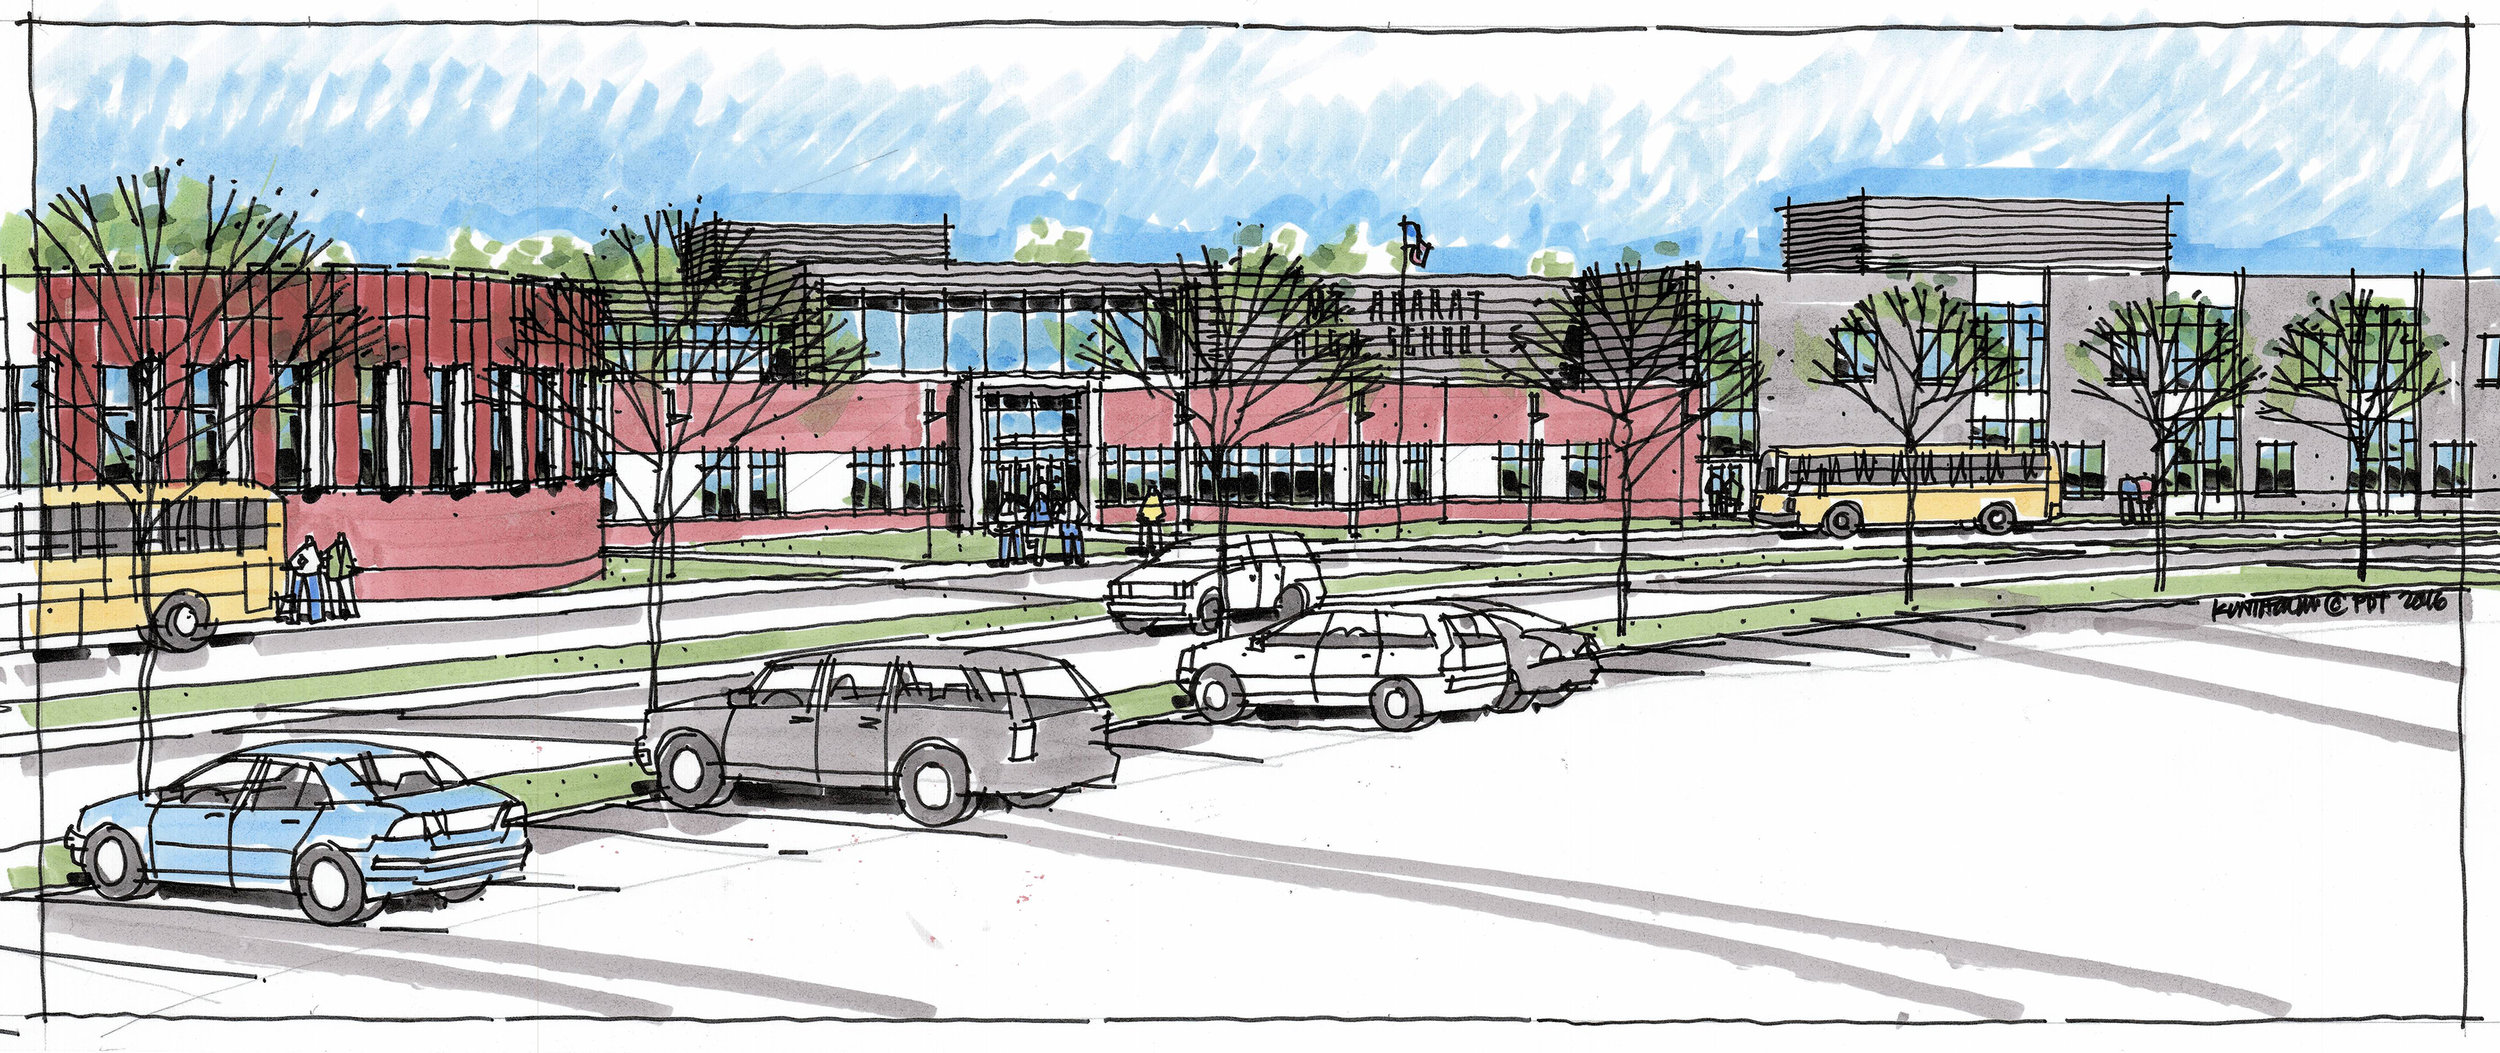 Hand renderings of key areas communicate the design intent to the client and the public during early design phases.